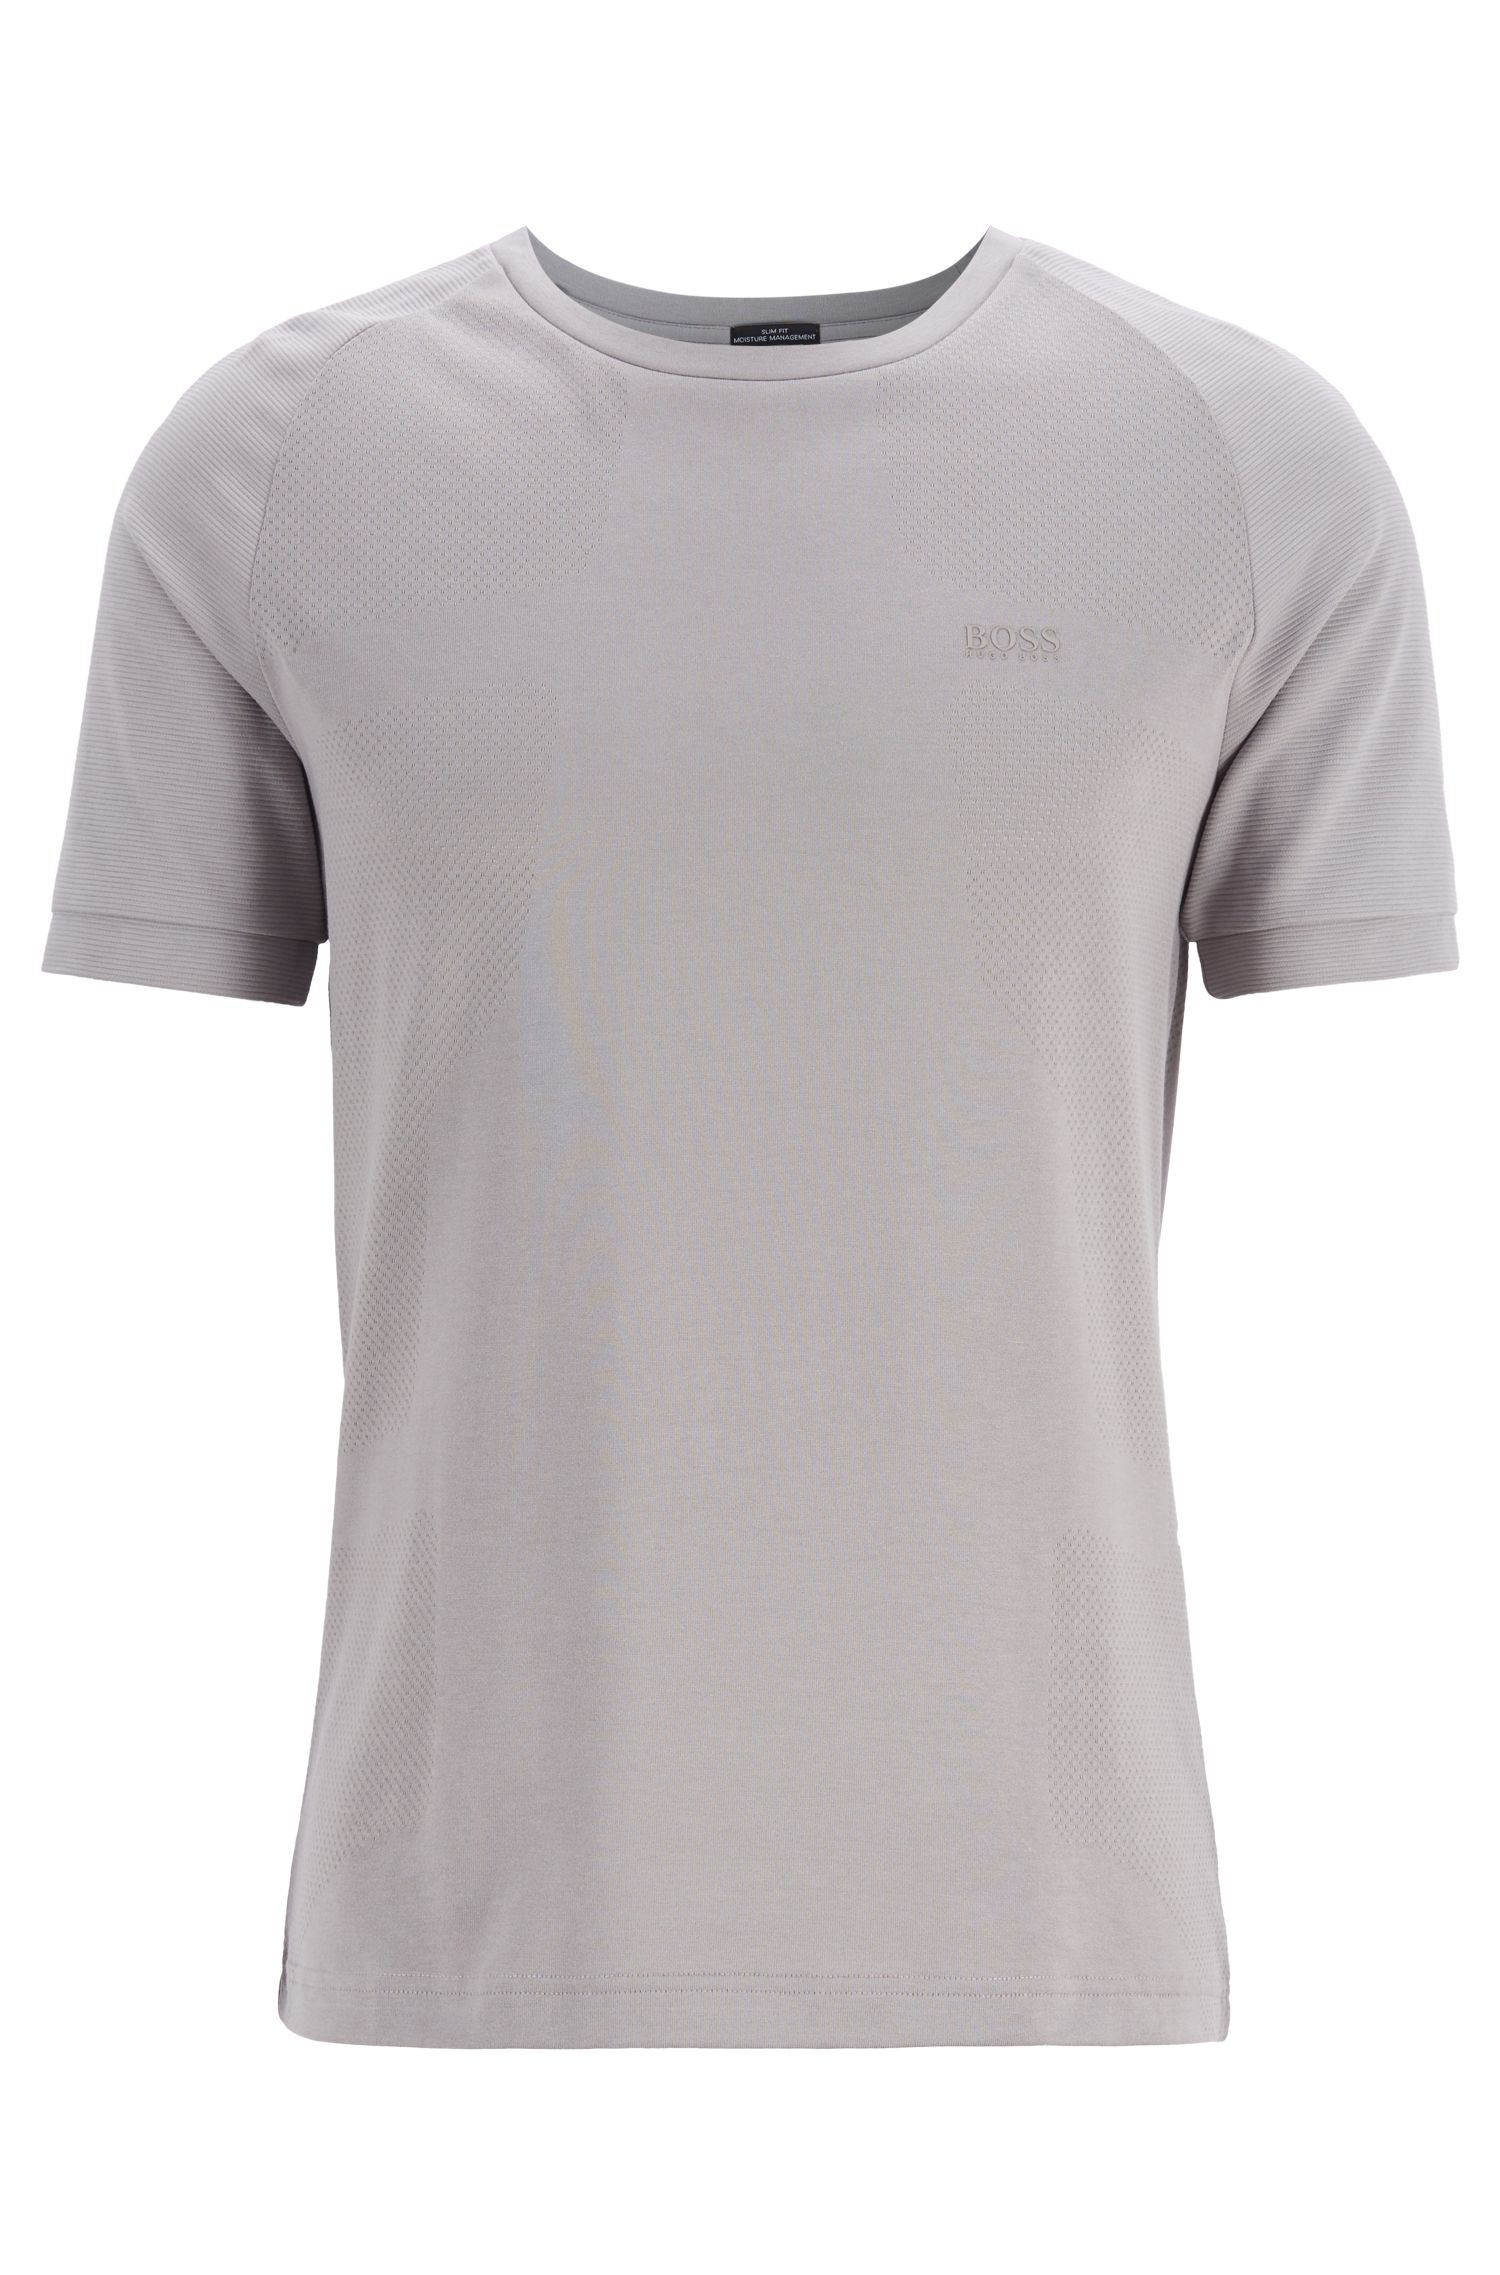 Slim-Fit T-Shirt aus Baumwoll-Mix mit S.Café®-Technologie, Grau